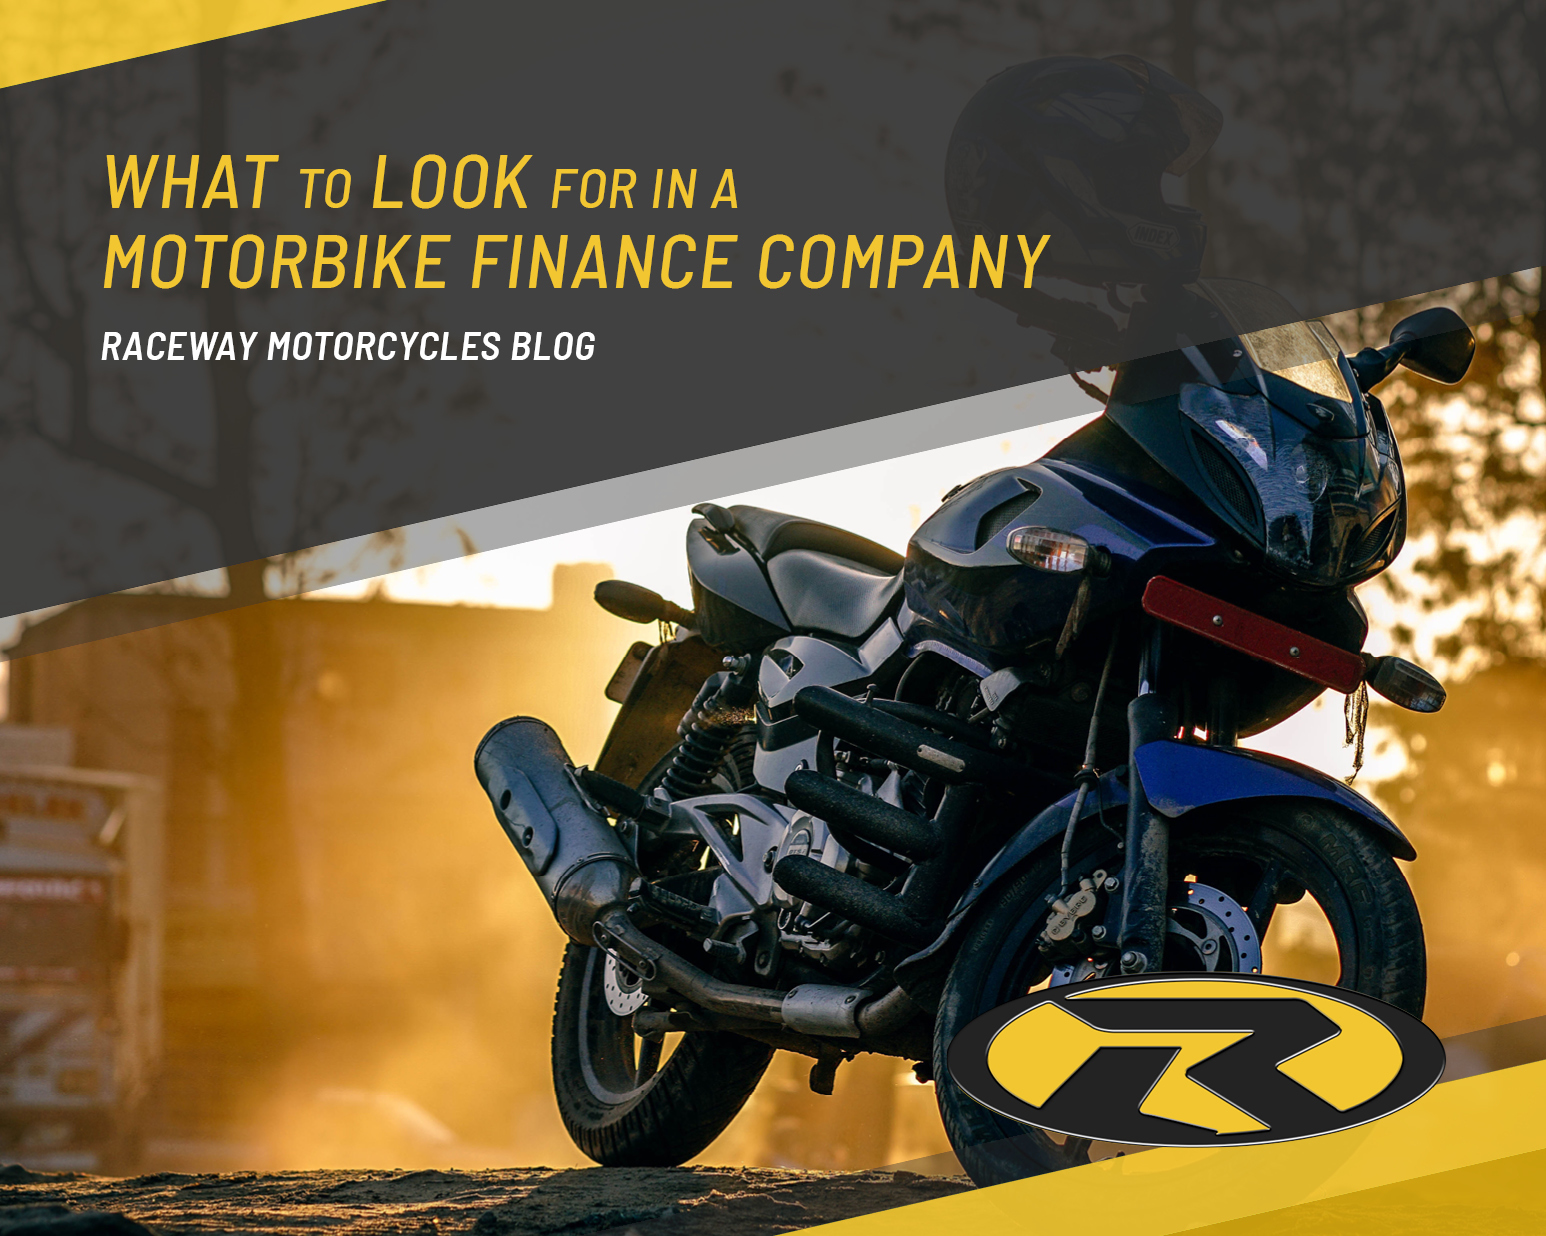 What to Look for in a Motorbike Finance Company